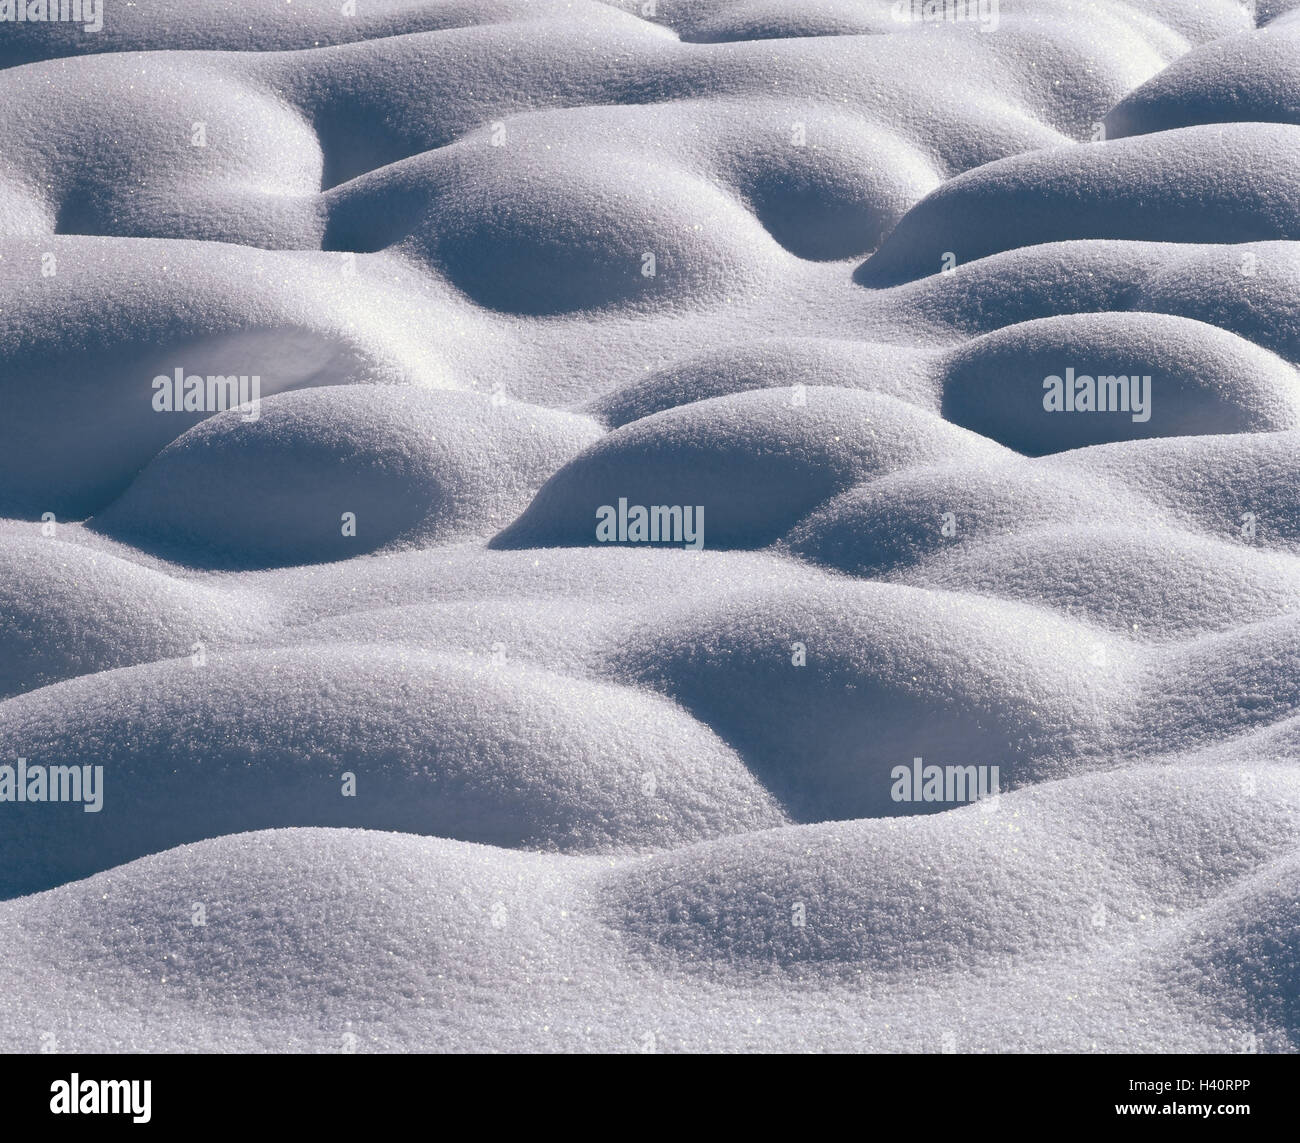 Snow surface, hilly, season, winter, snow, fresh snowfall, powder snow, snow-covered, hill, waves, unevenly, unevennesses, - Stock Image